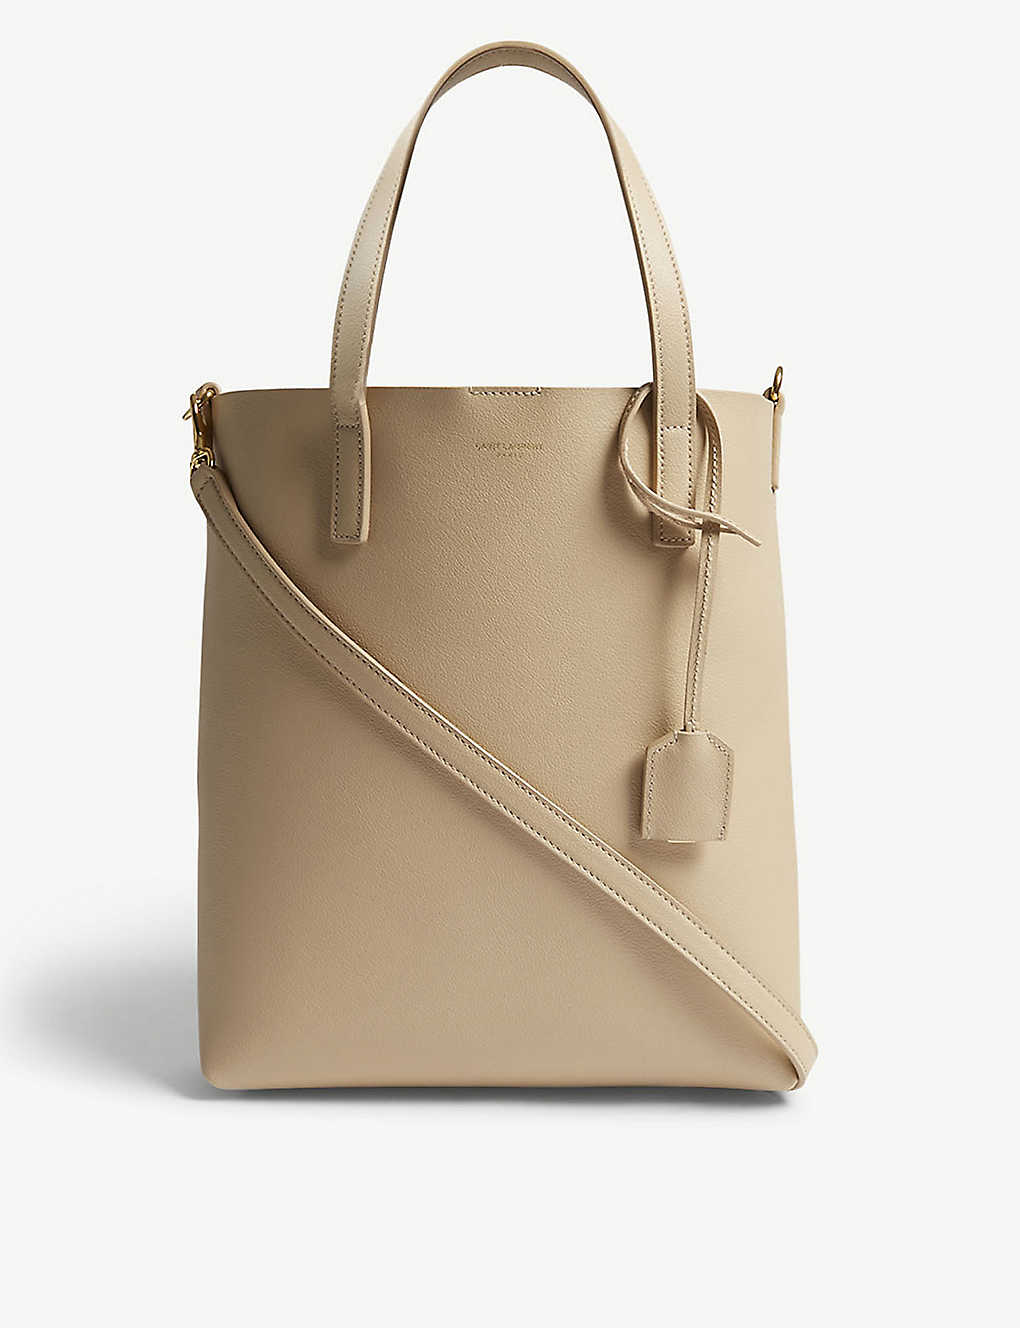 SAINT LAURENT - Toy North South leather tote  92f368870fdf6